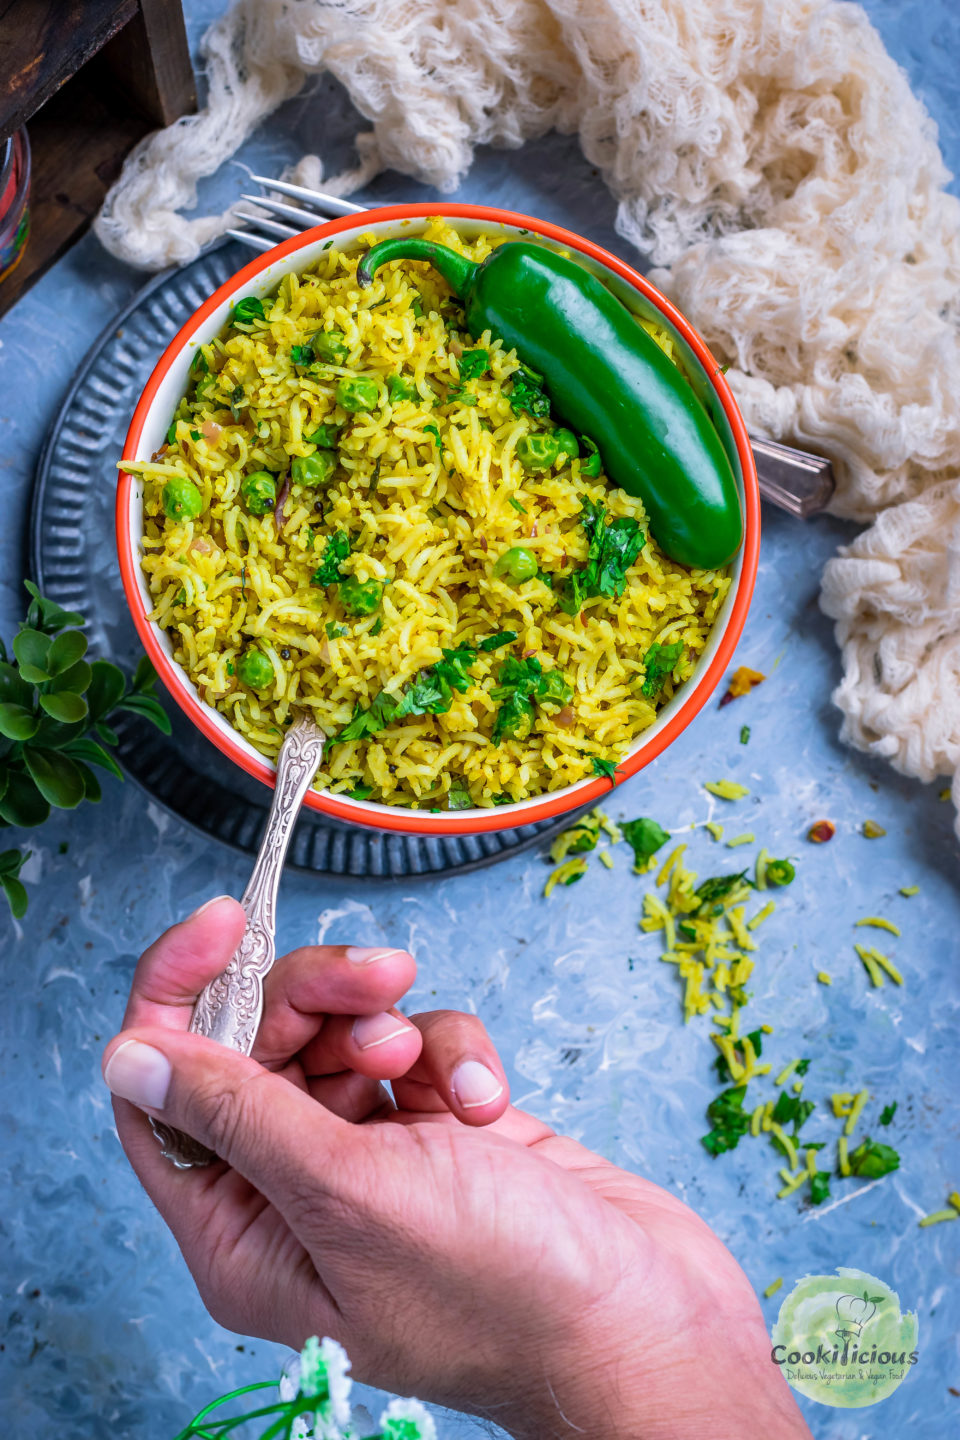 a hand holding a spoon and digging into a bowl of Green Peas Pulao